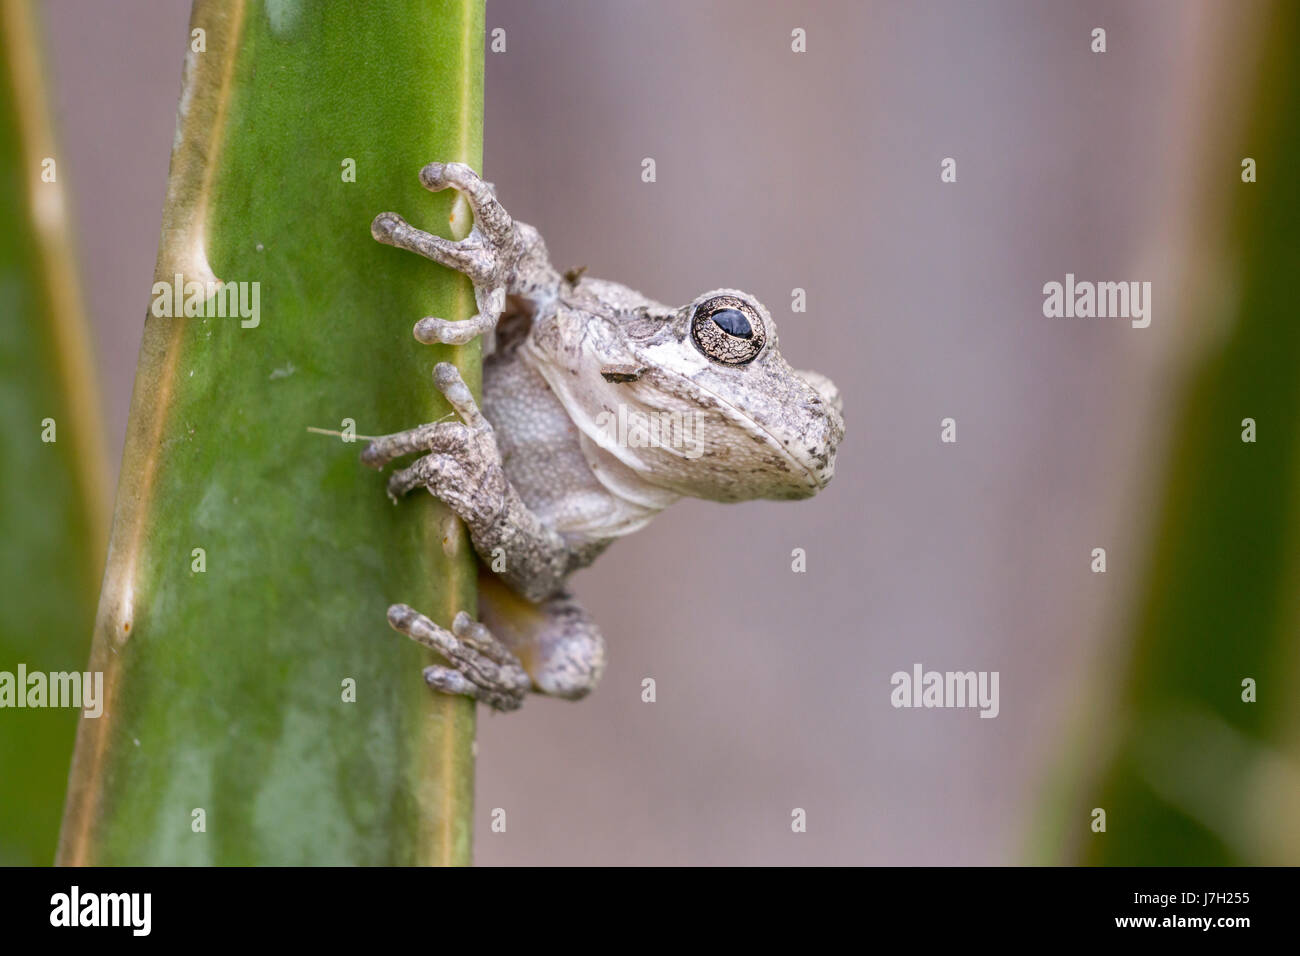 White toad Stock Photo